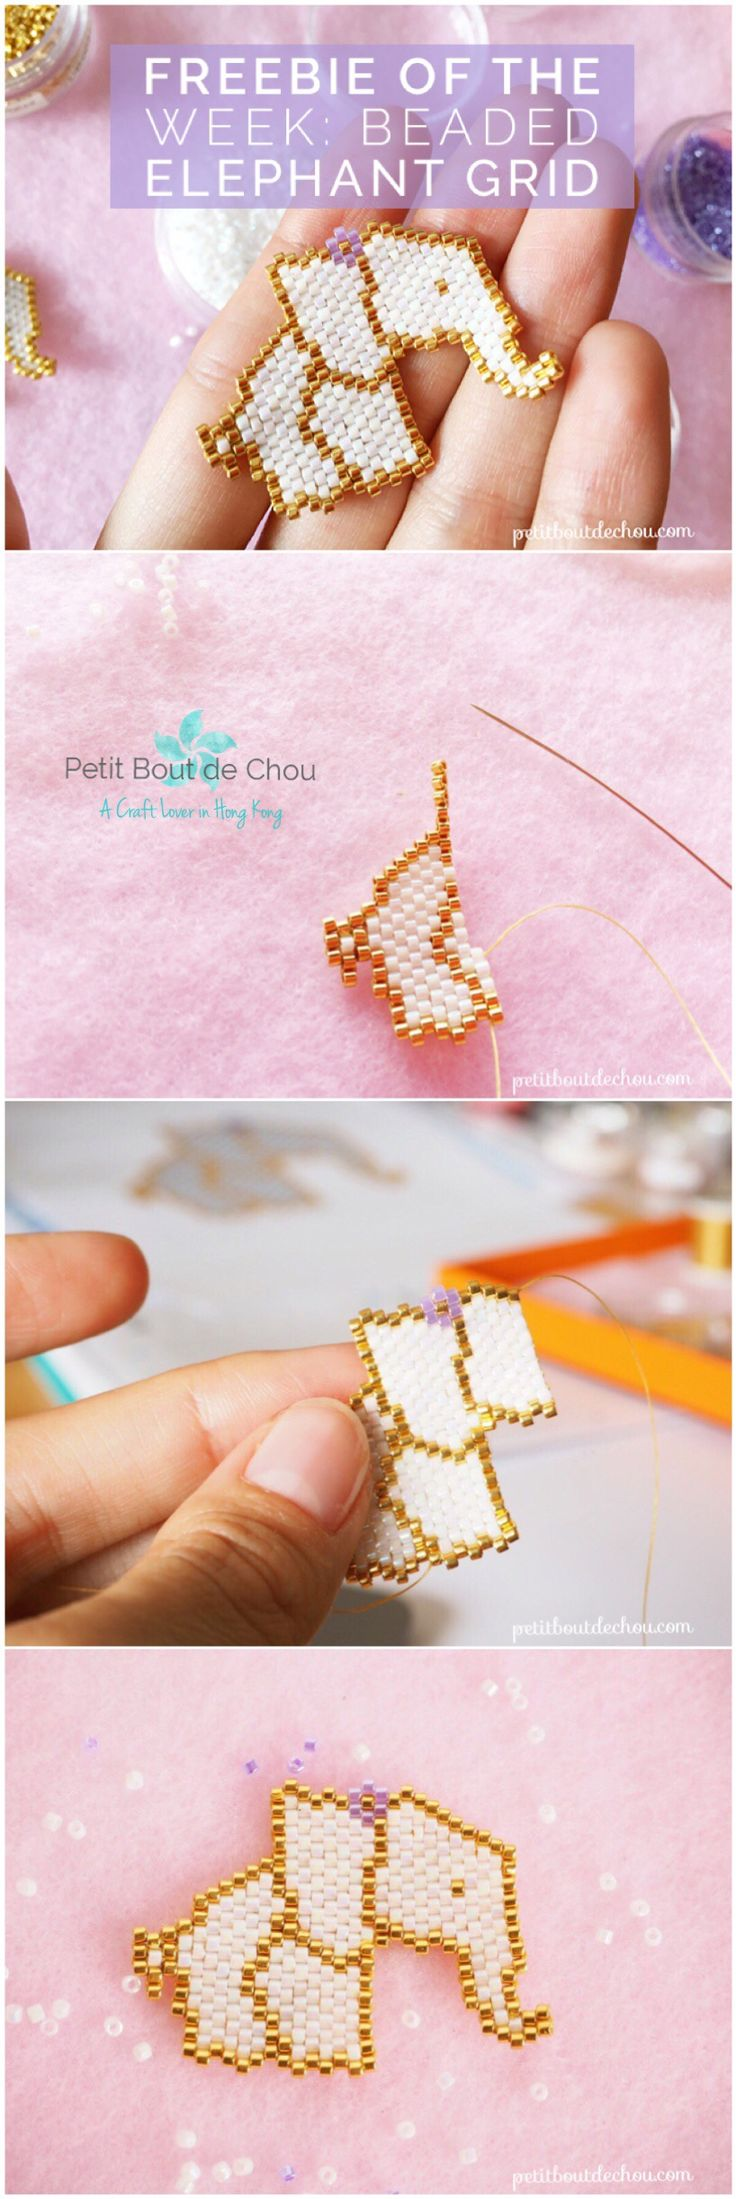 Create a beaded elephant in brick stitch using miyuki delica beads. Free grid available.